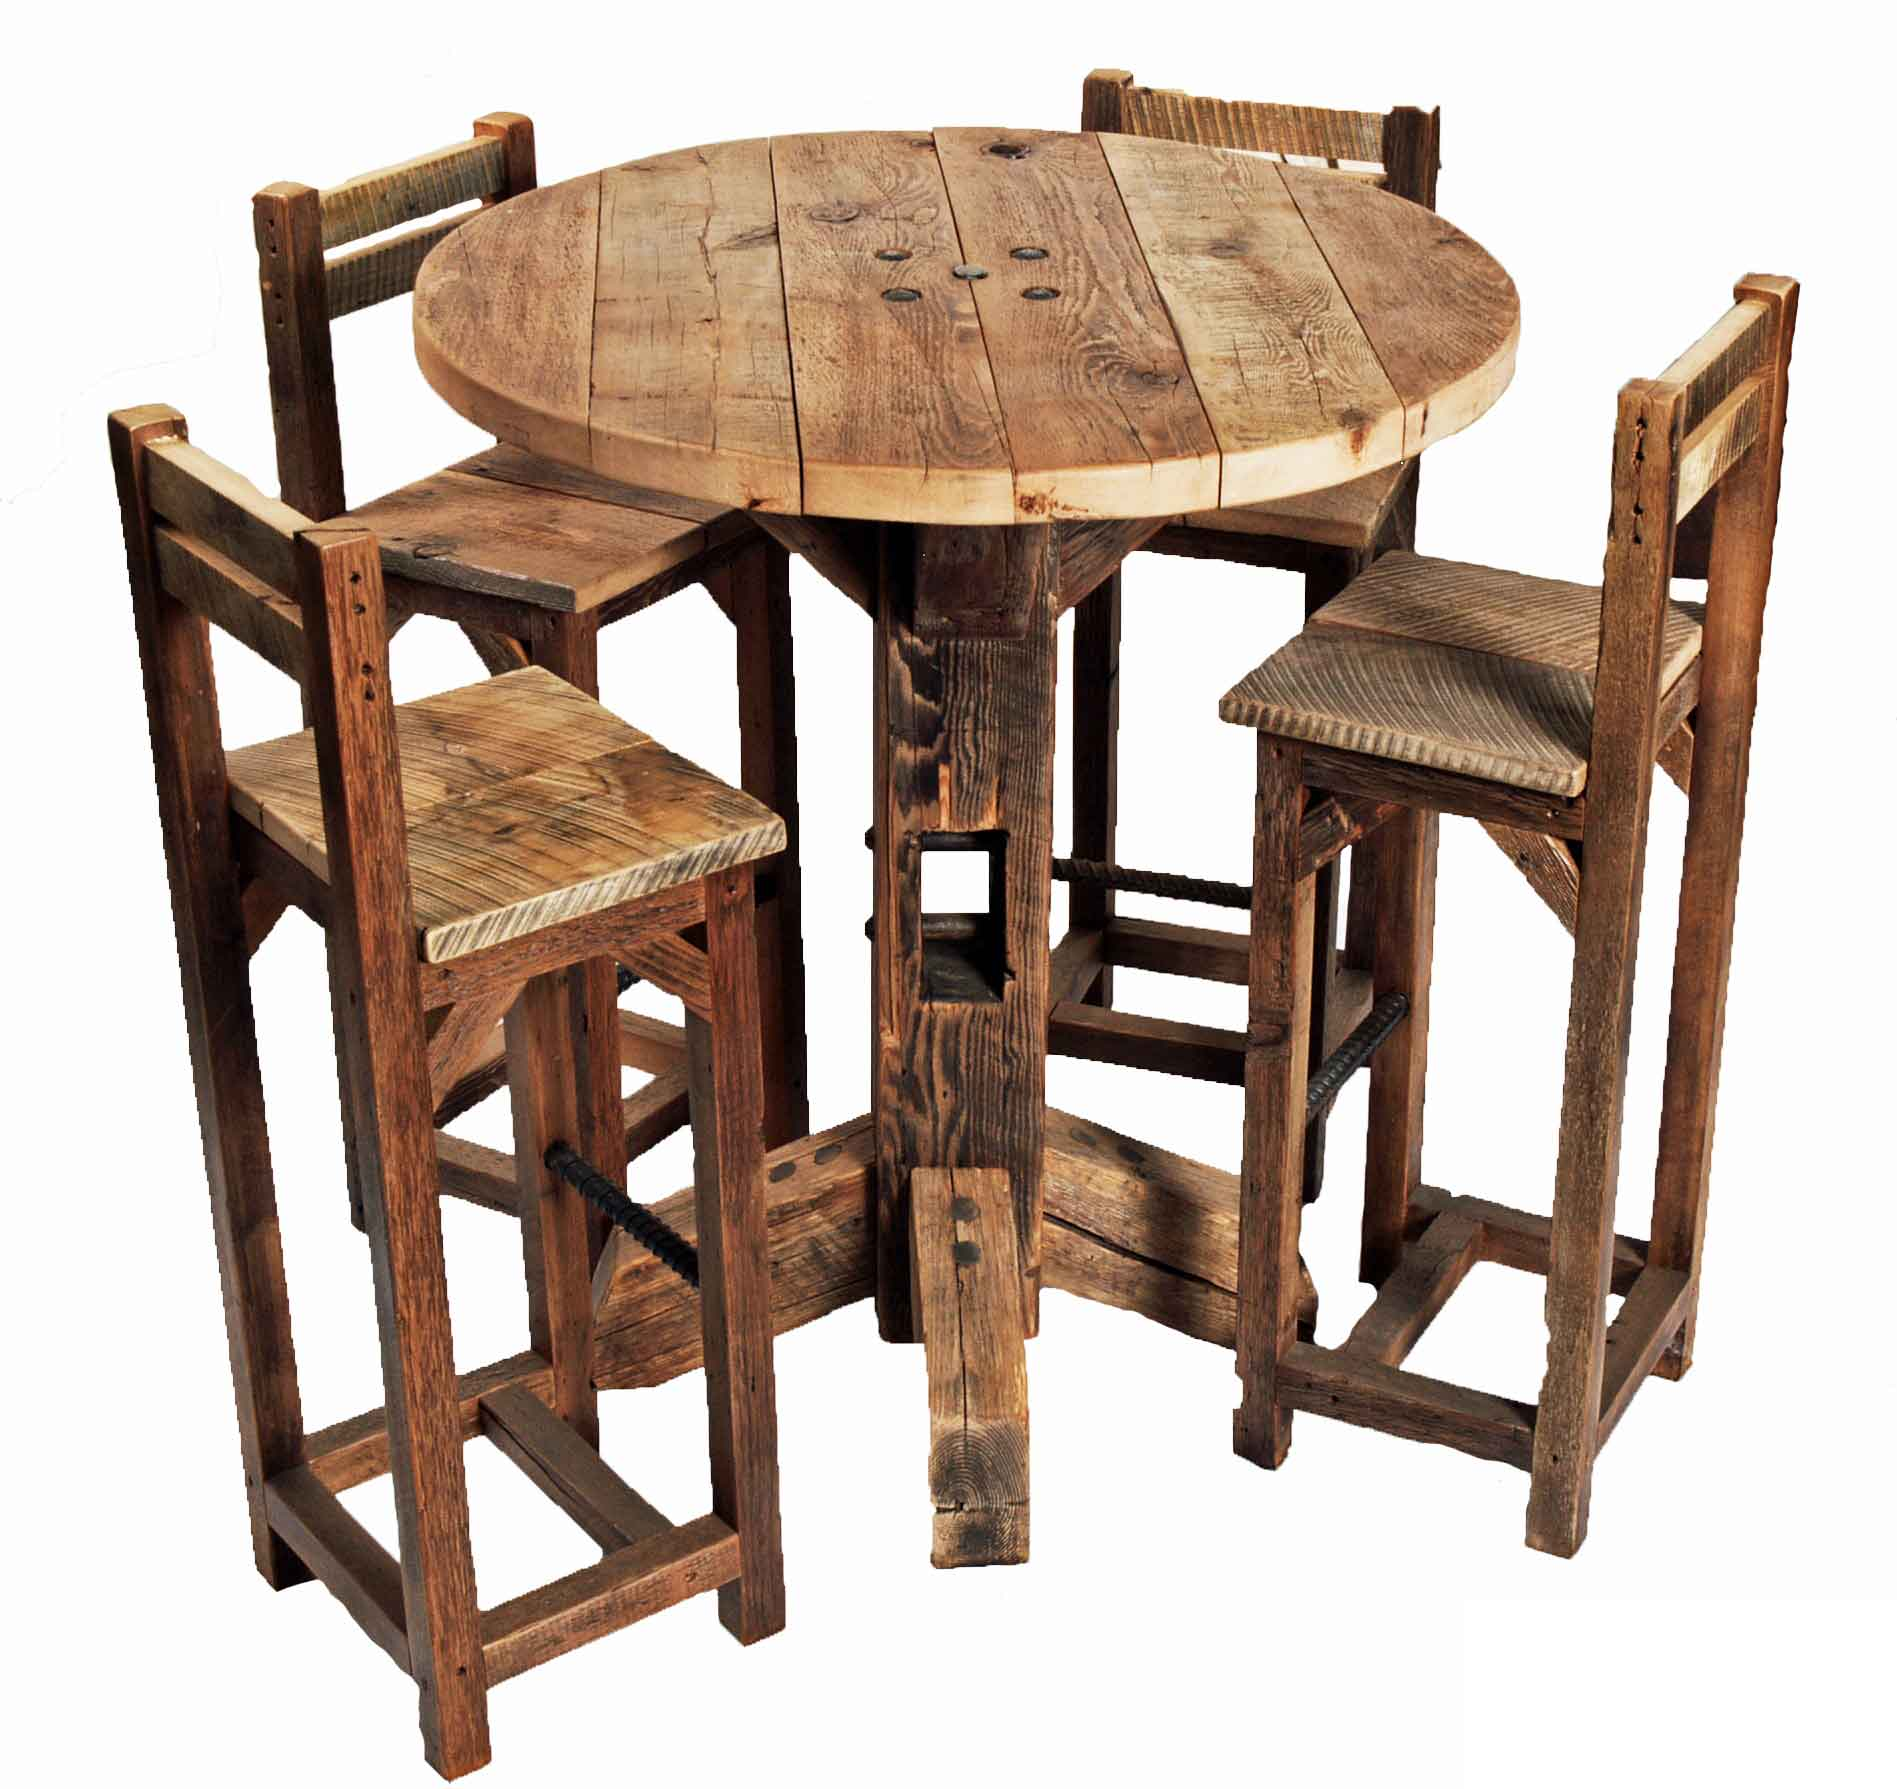 great vintage wood dining table also small dining room table sets kitchen table and chairs Round Bar Table And Chairs Urban Barnhaus Design HIGHTOP ROUND TABLE